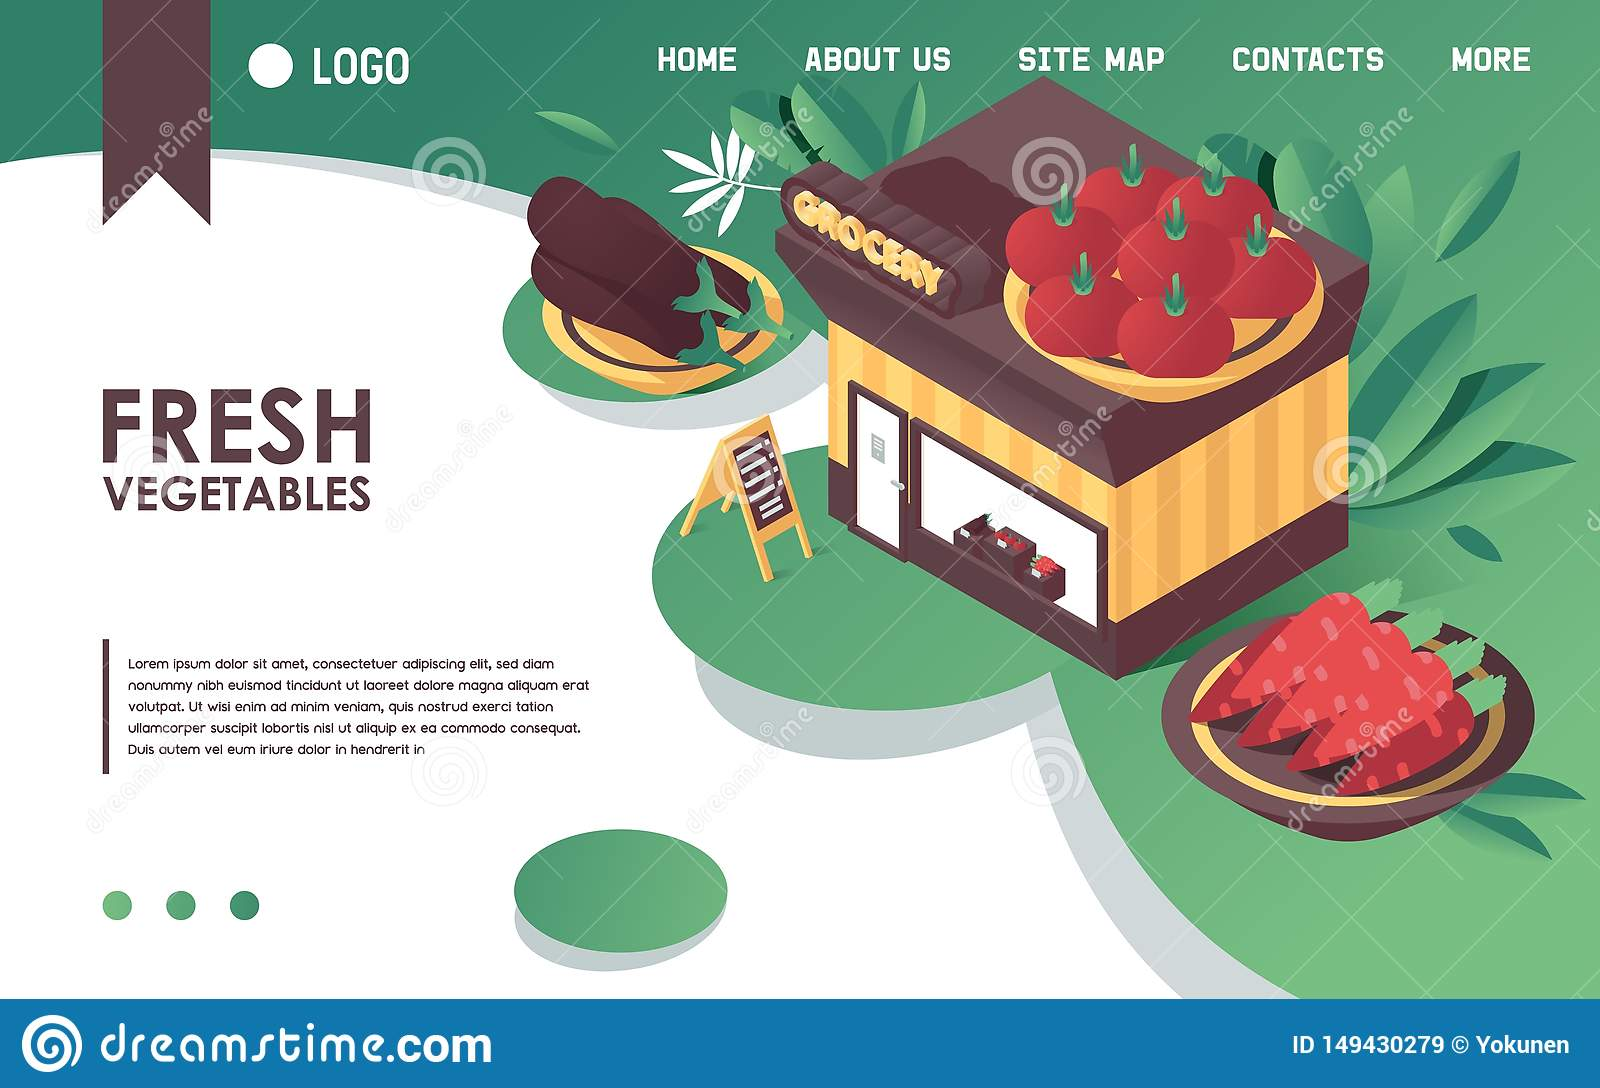 Vector isometric concept banner or landing page template, good for fresh vegetables store or farm grocery shop advertising. Bright